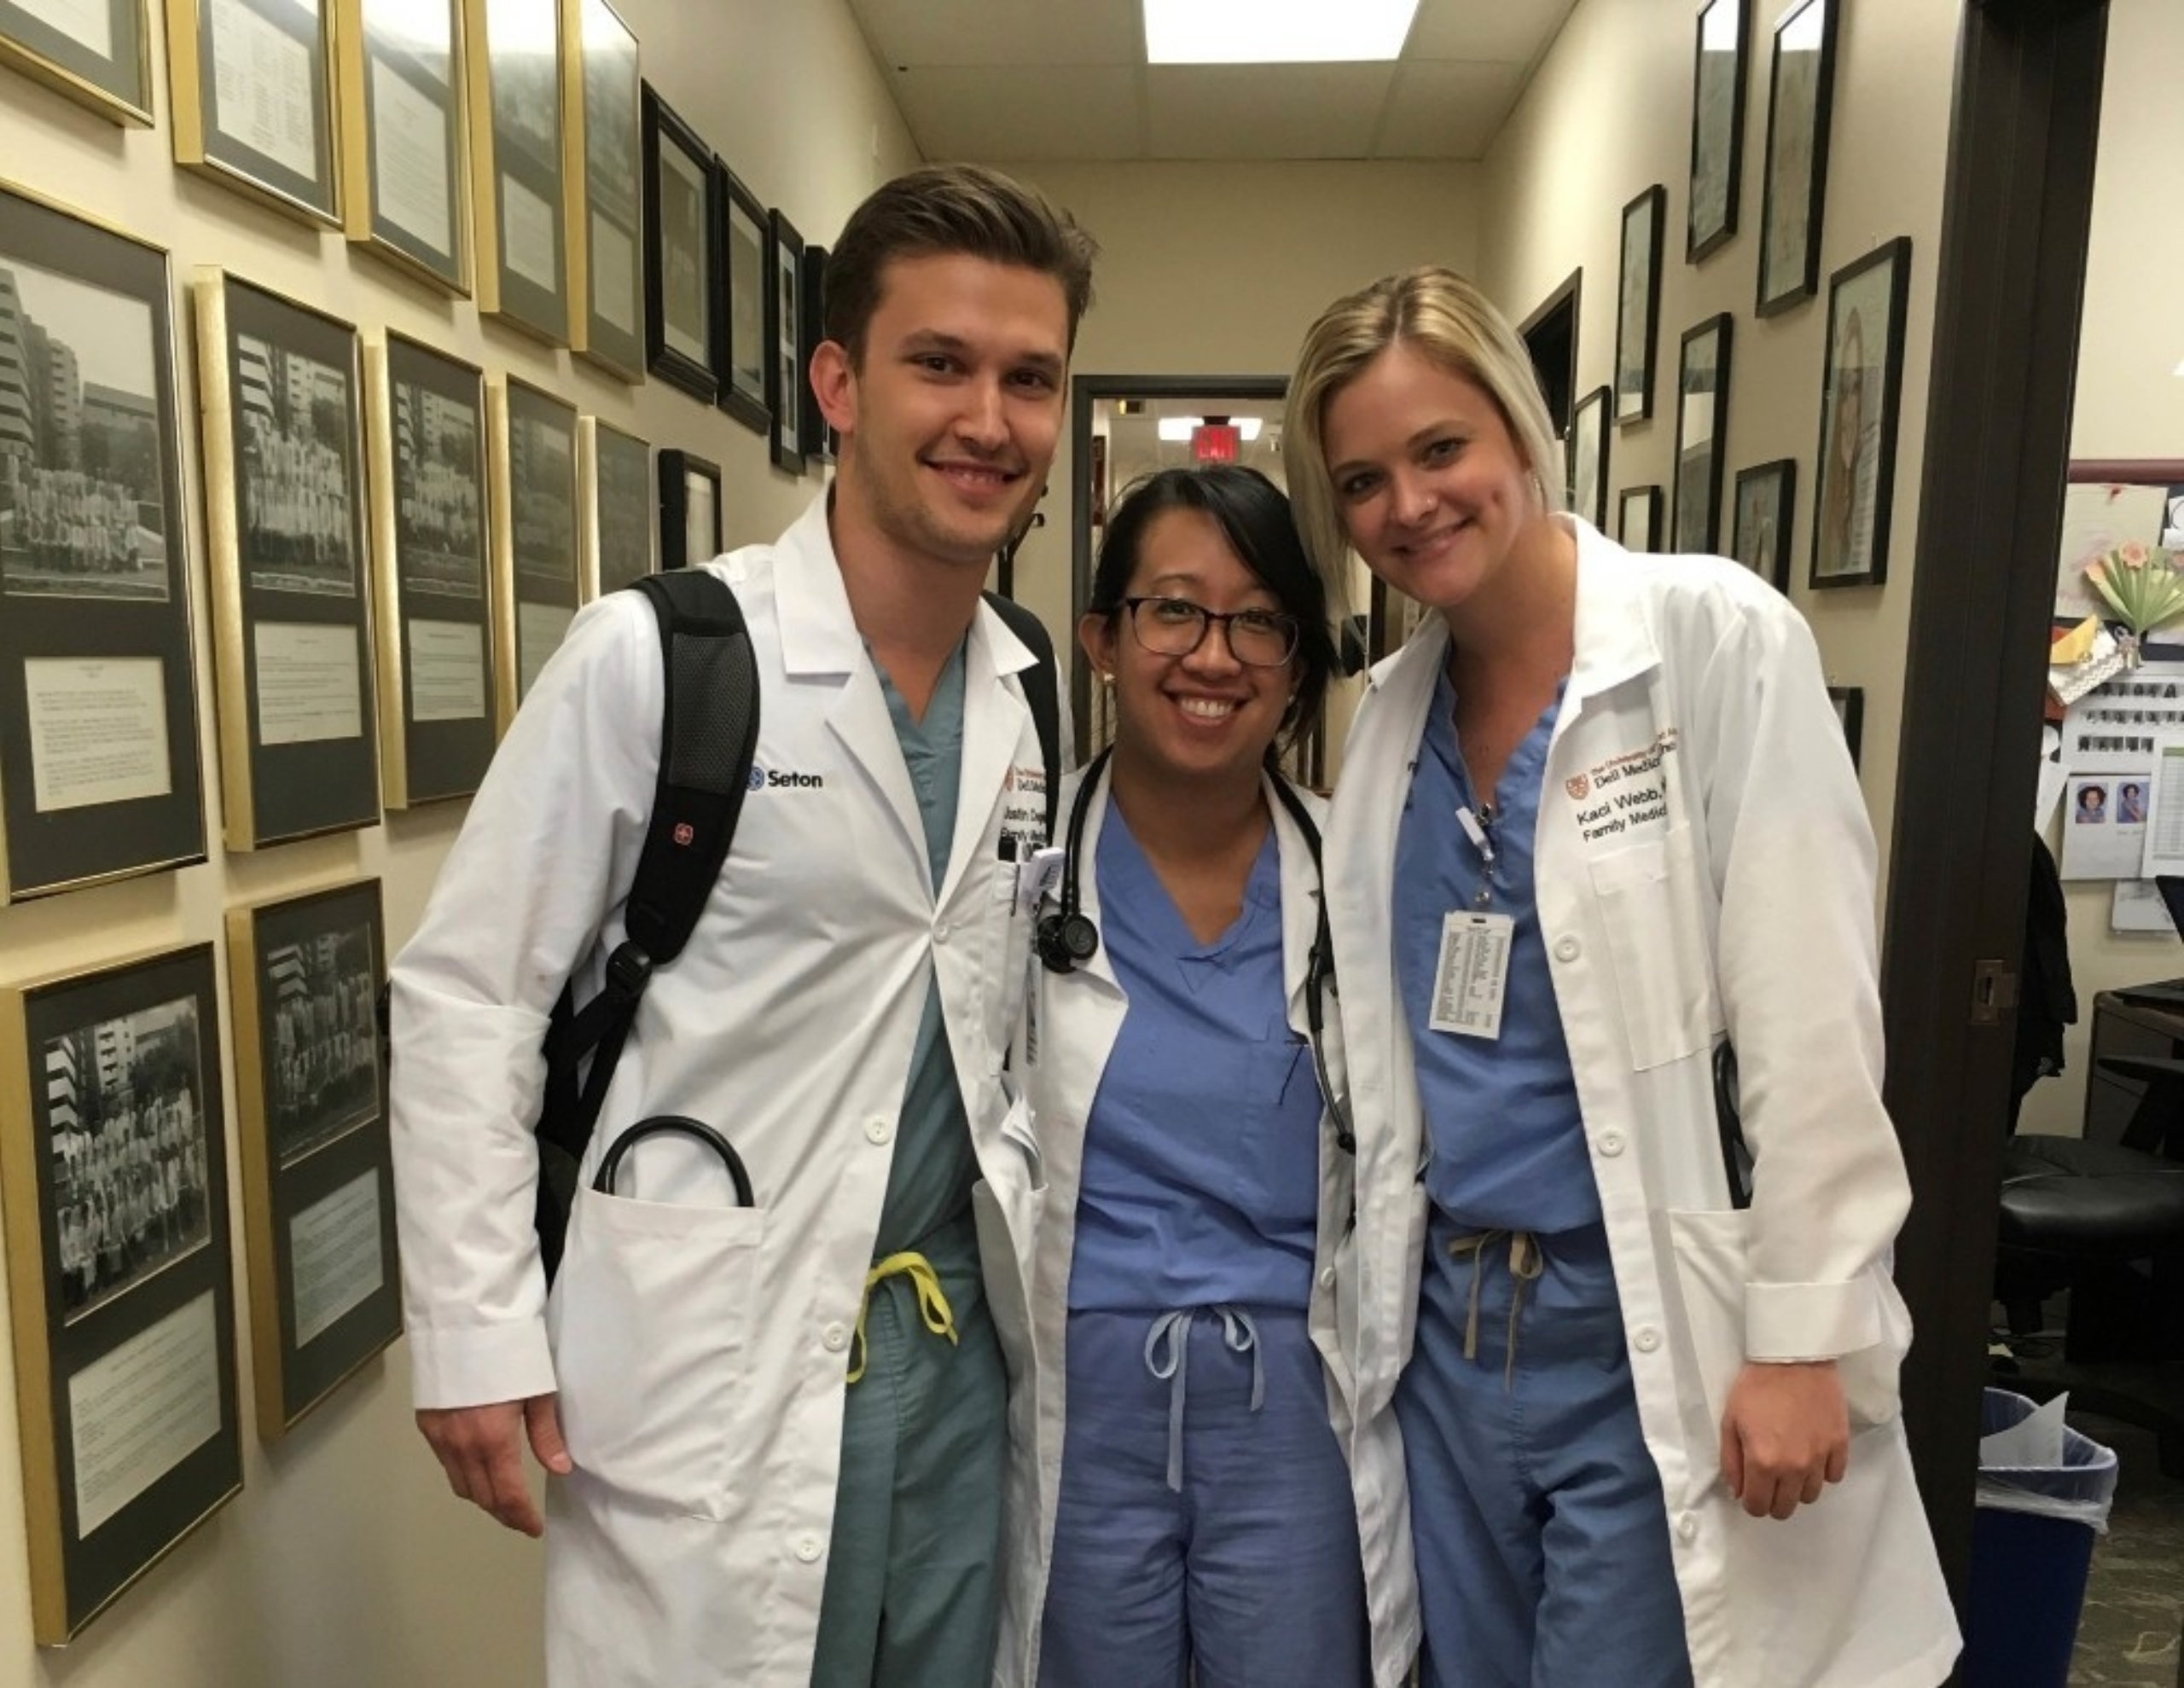 Three residents in scrubs.